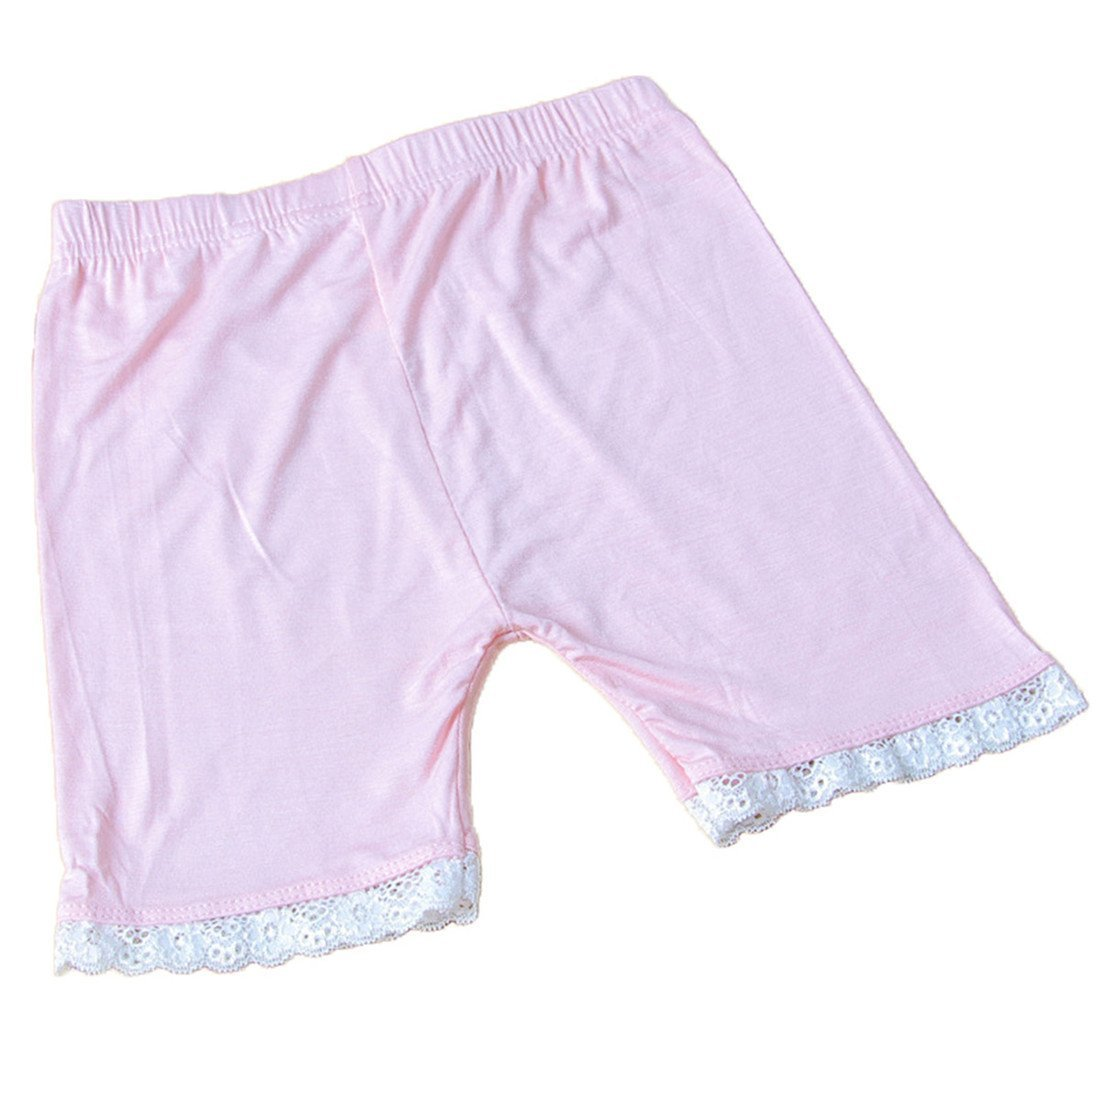 Little Girls Kids 4 Pcs Slim Elastic Lace Underwear Safety Short Panties Dancewear